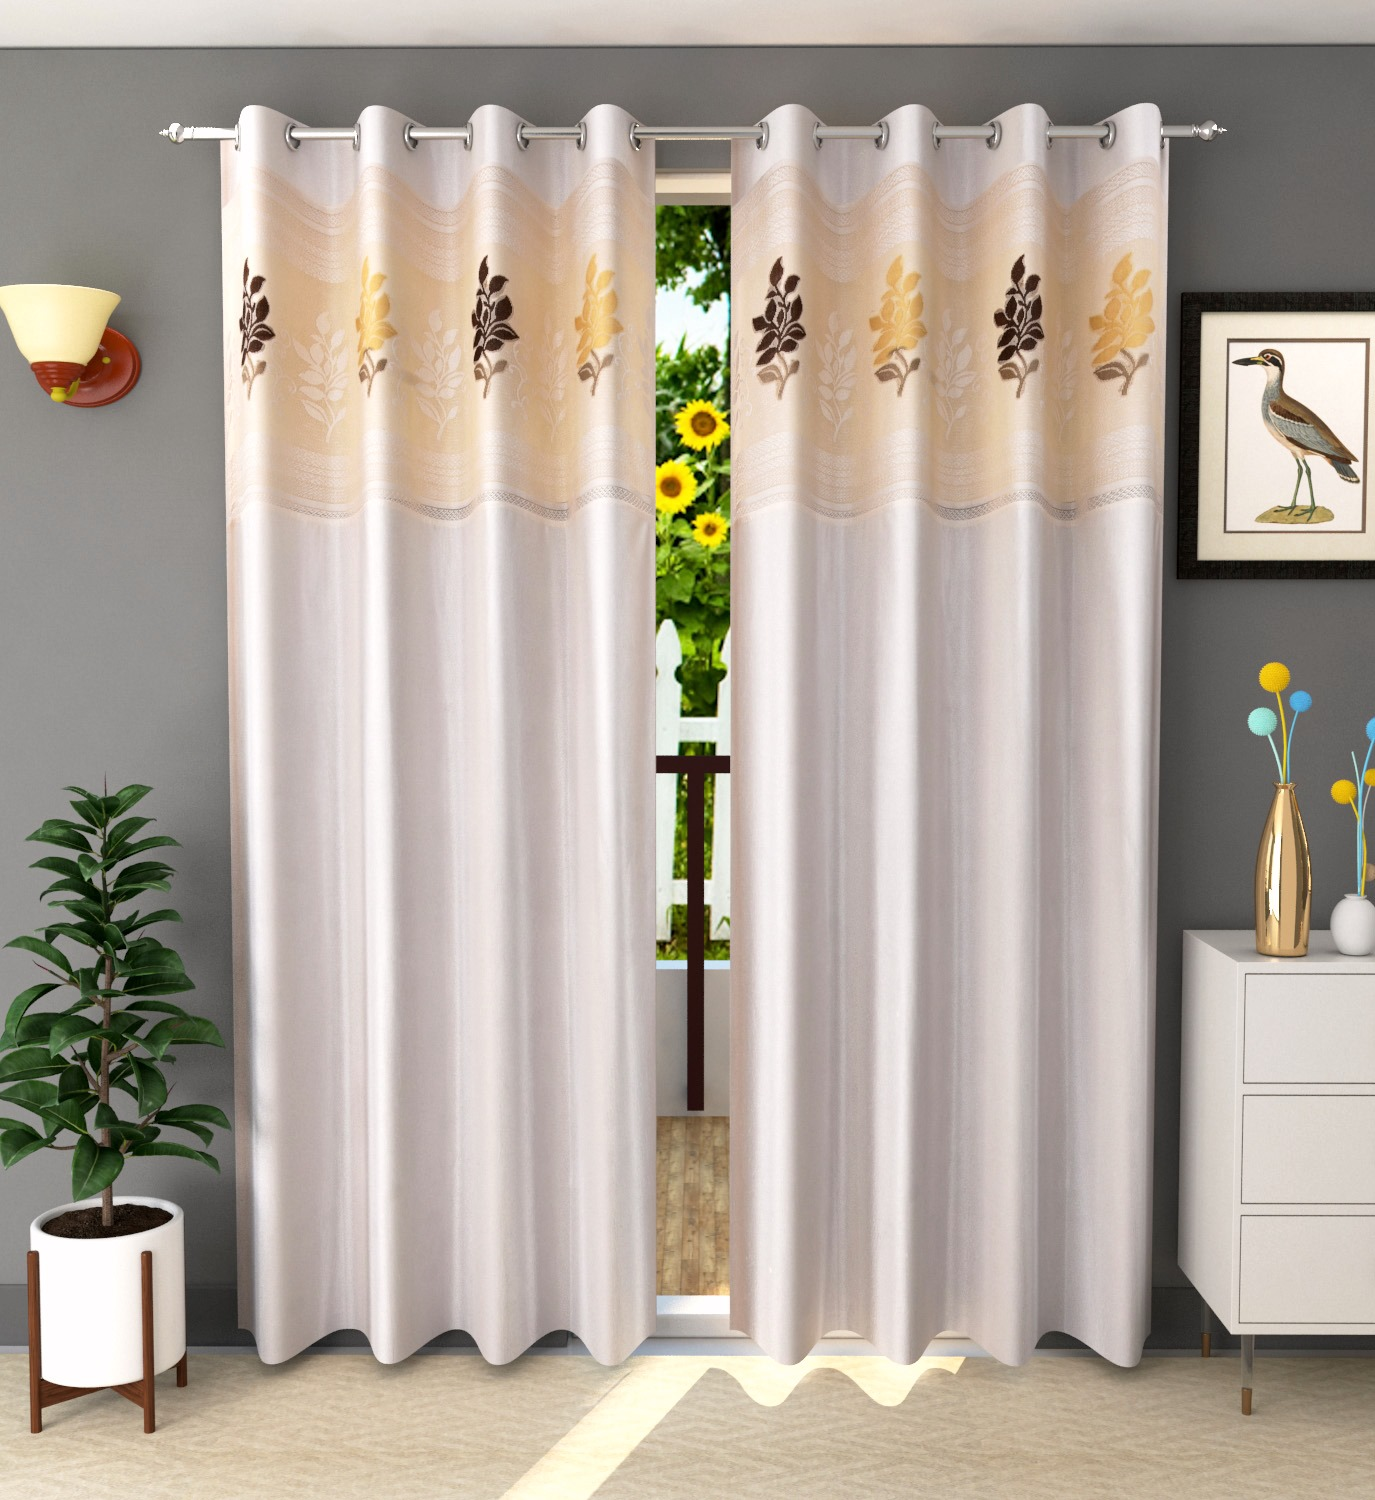 Homefab India 2 Piece Polyester  Curtain with Floral Net (Setof2HF835EuroNetCream)